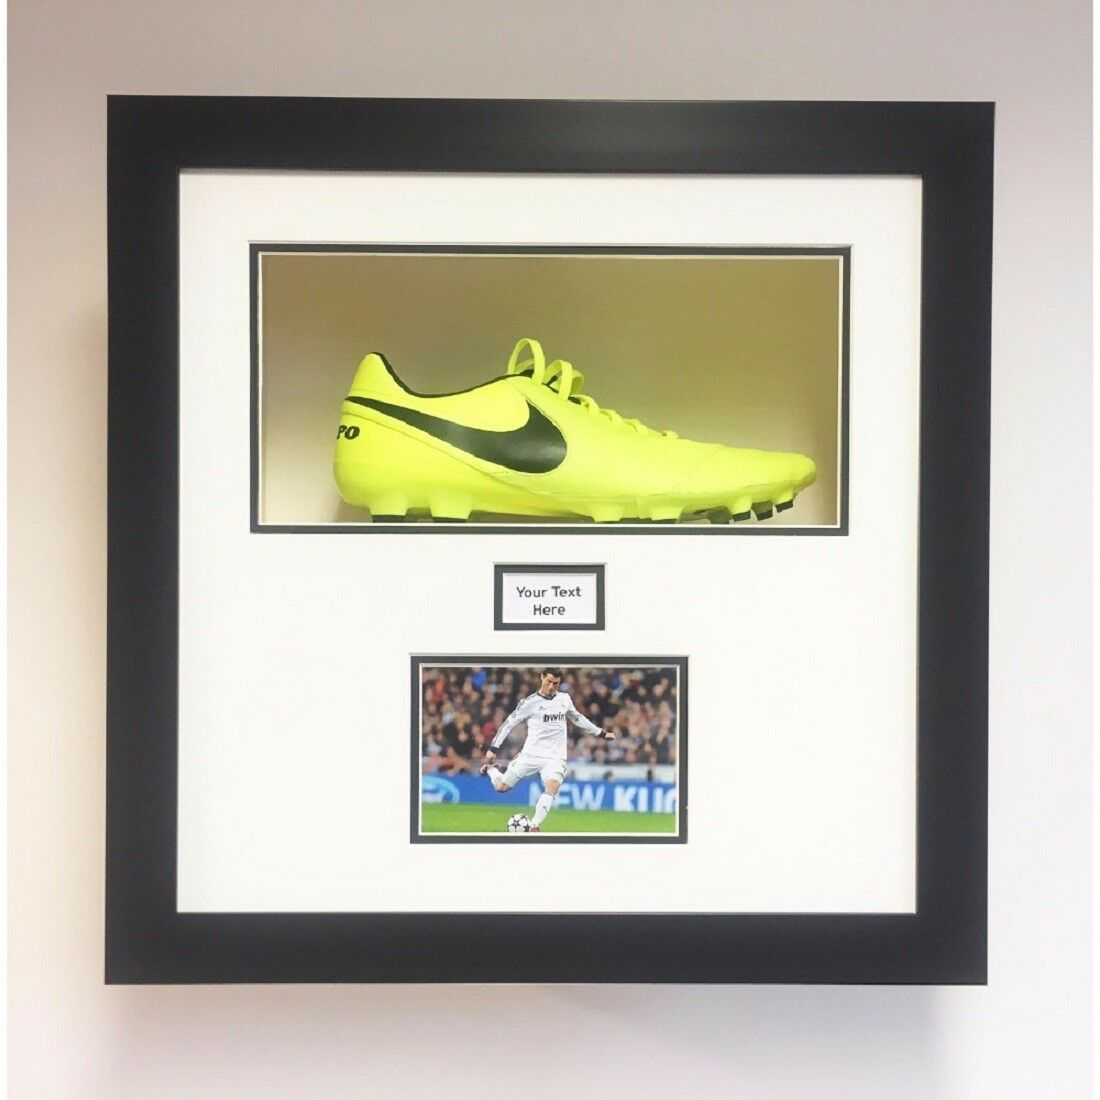 Frame Displays 1 football boot with Title and 1 Photo | White Mount Black Frame